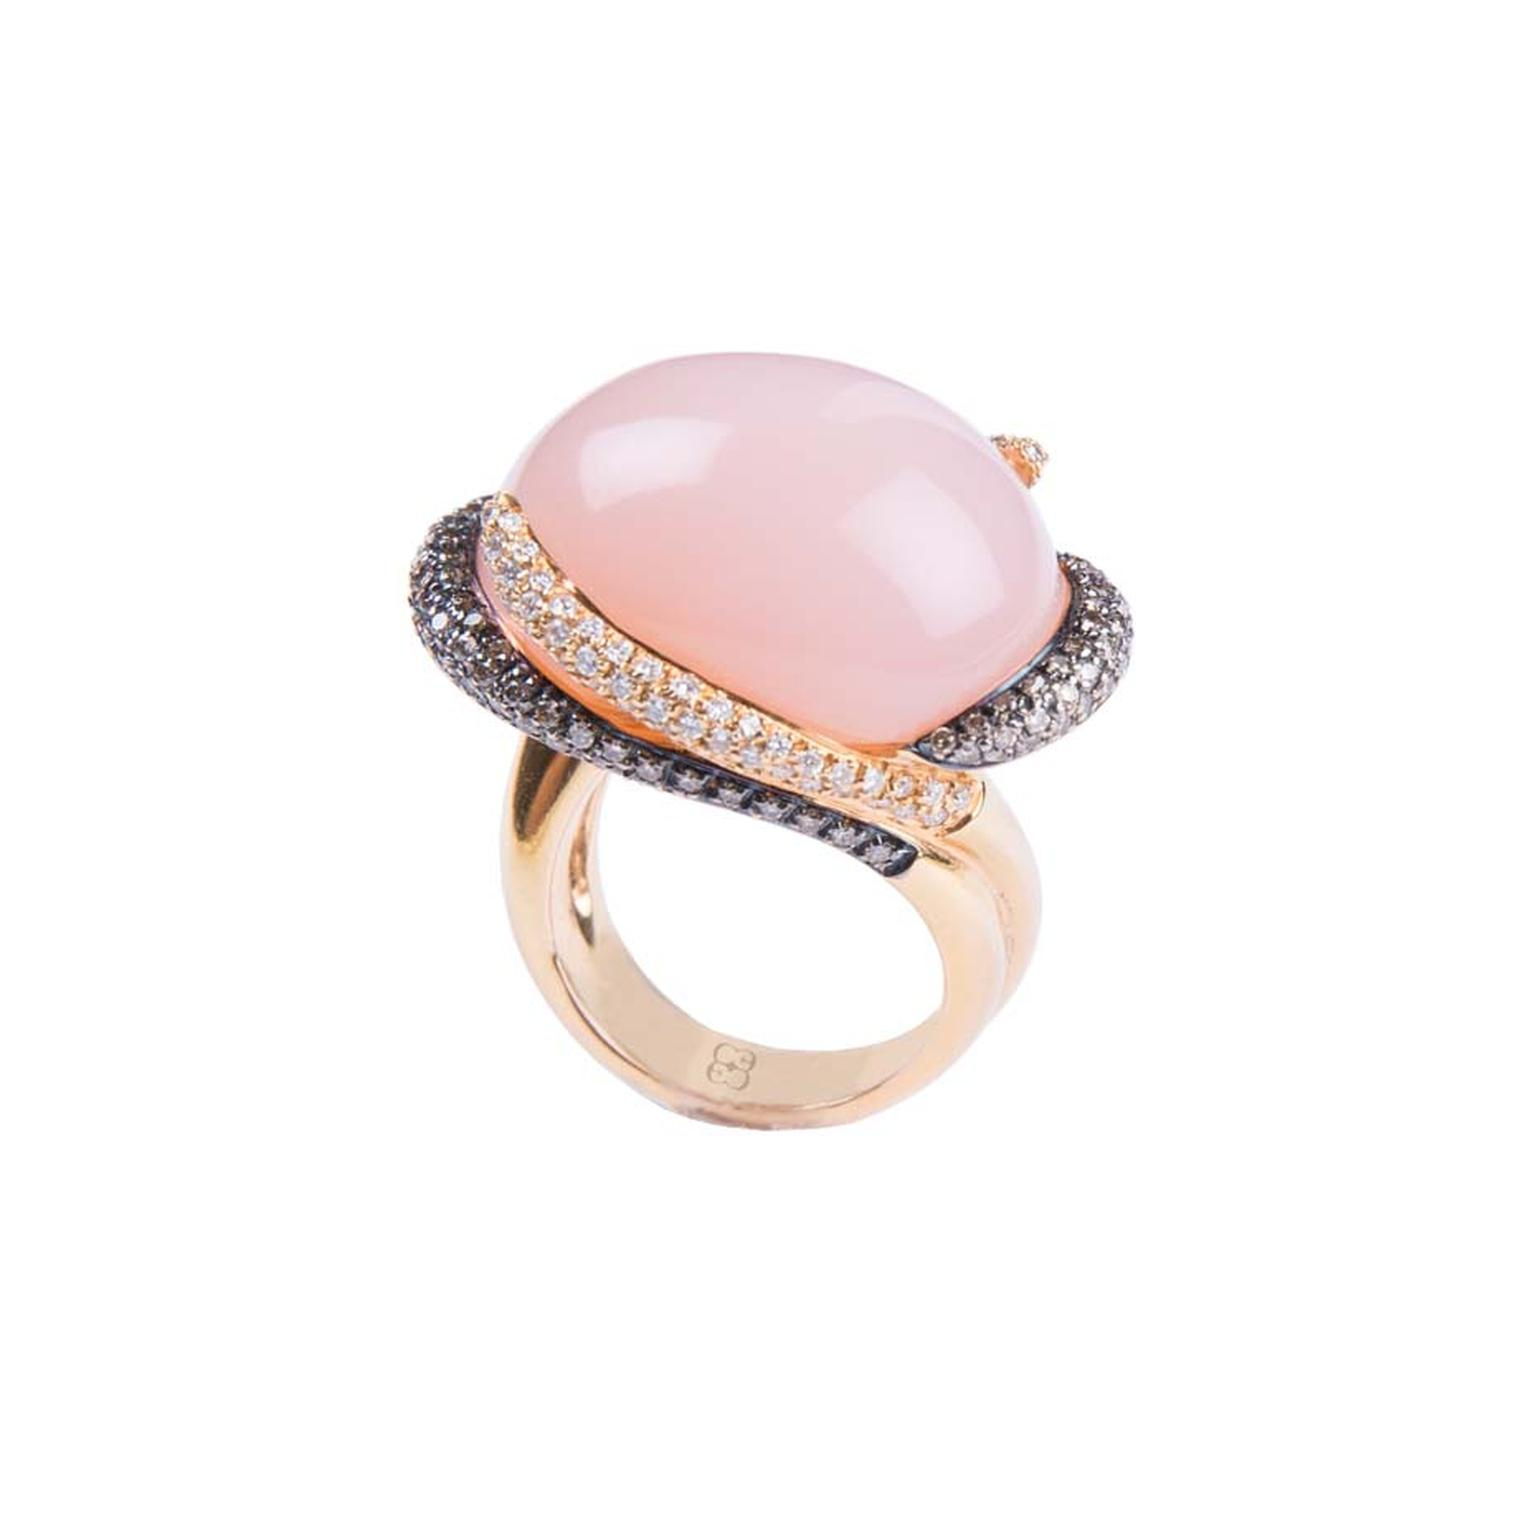 Elena Carrera rose quartz ring with brown and white diamonds (5,830€).